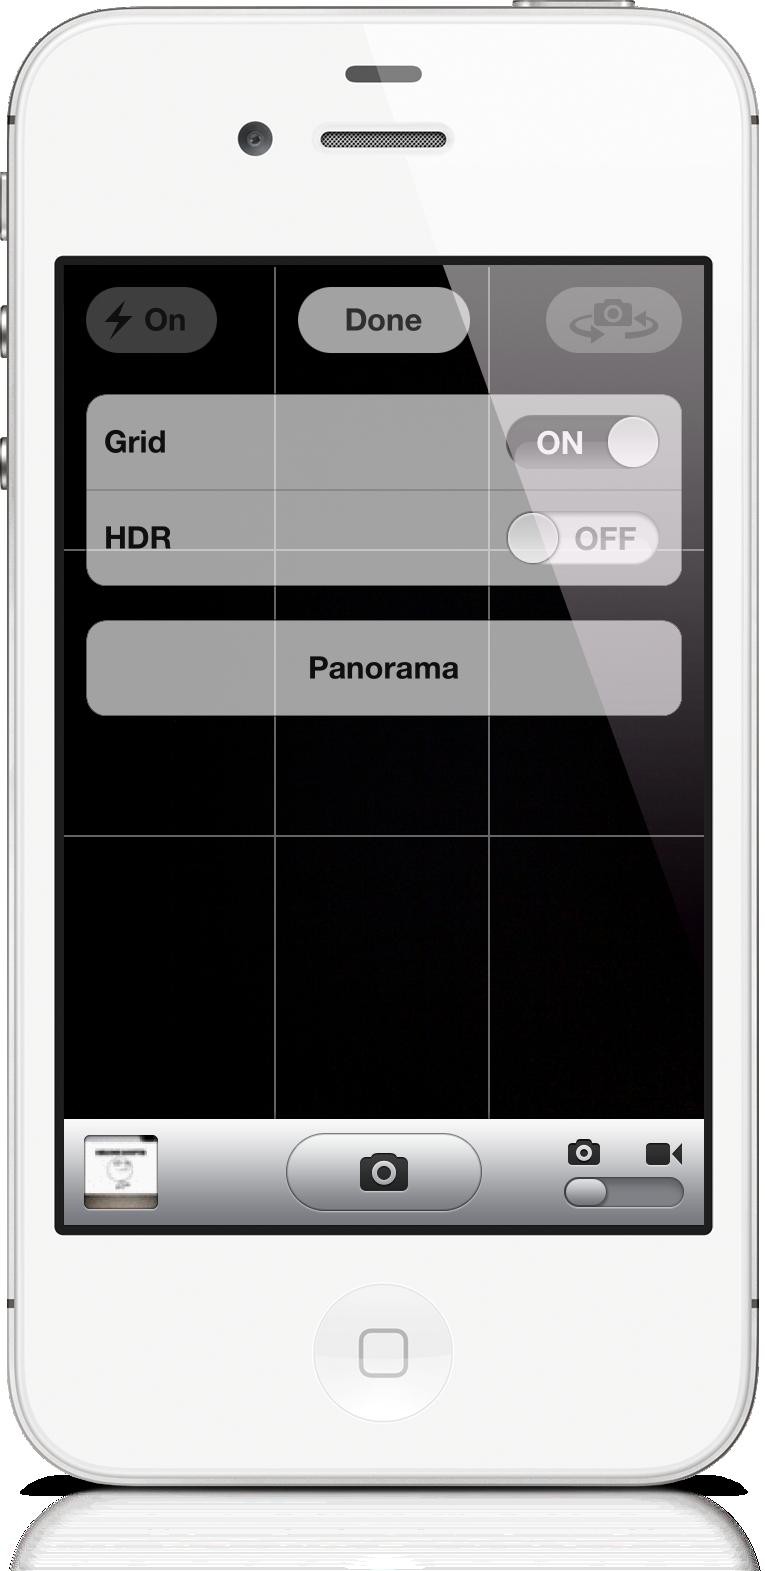 Enable iOS 5 panorama mode on your iPhone without Jailbreaking